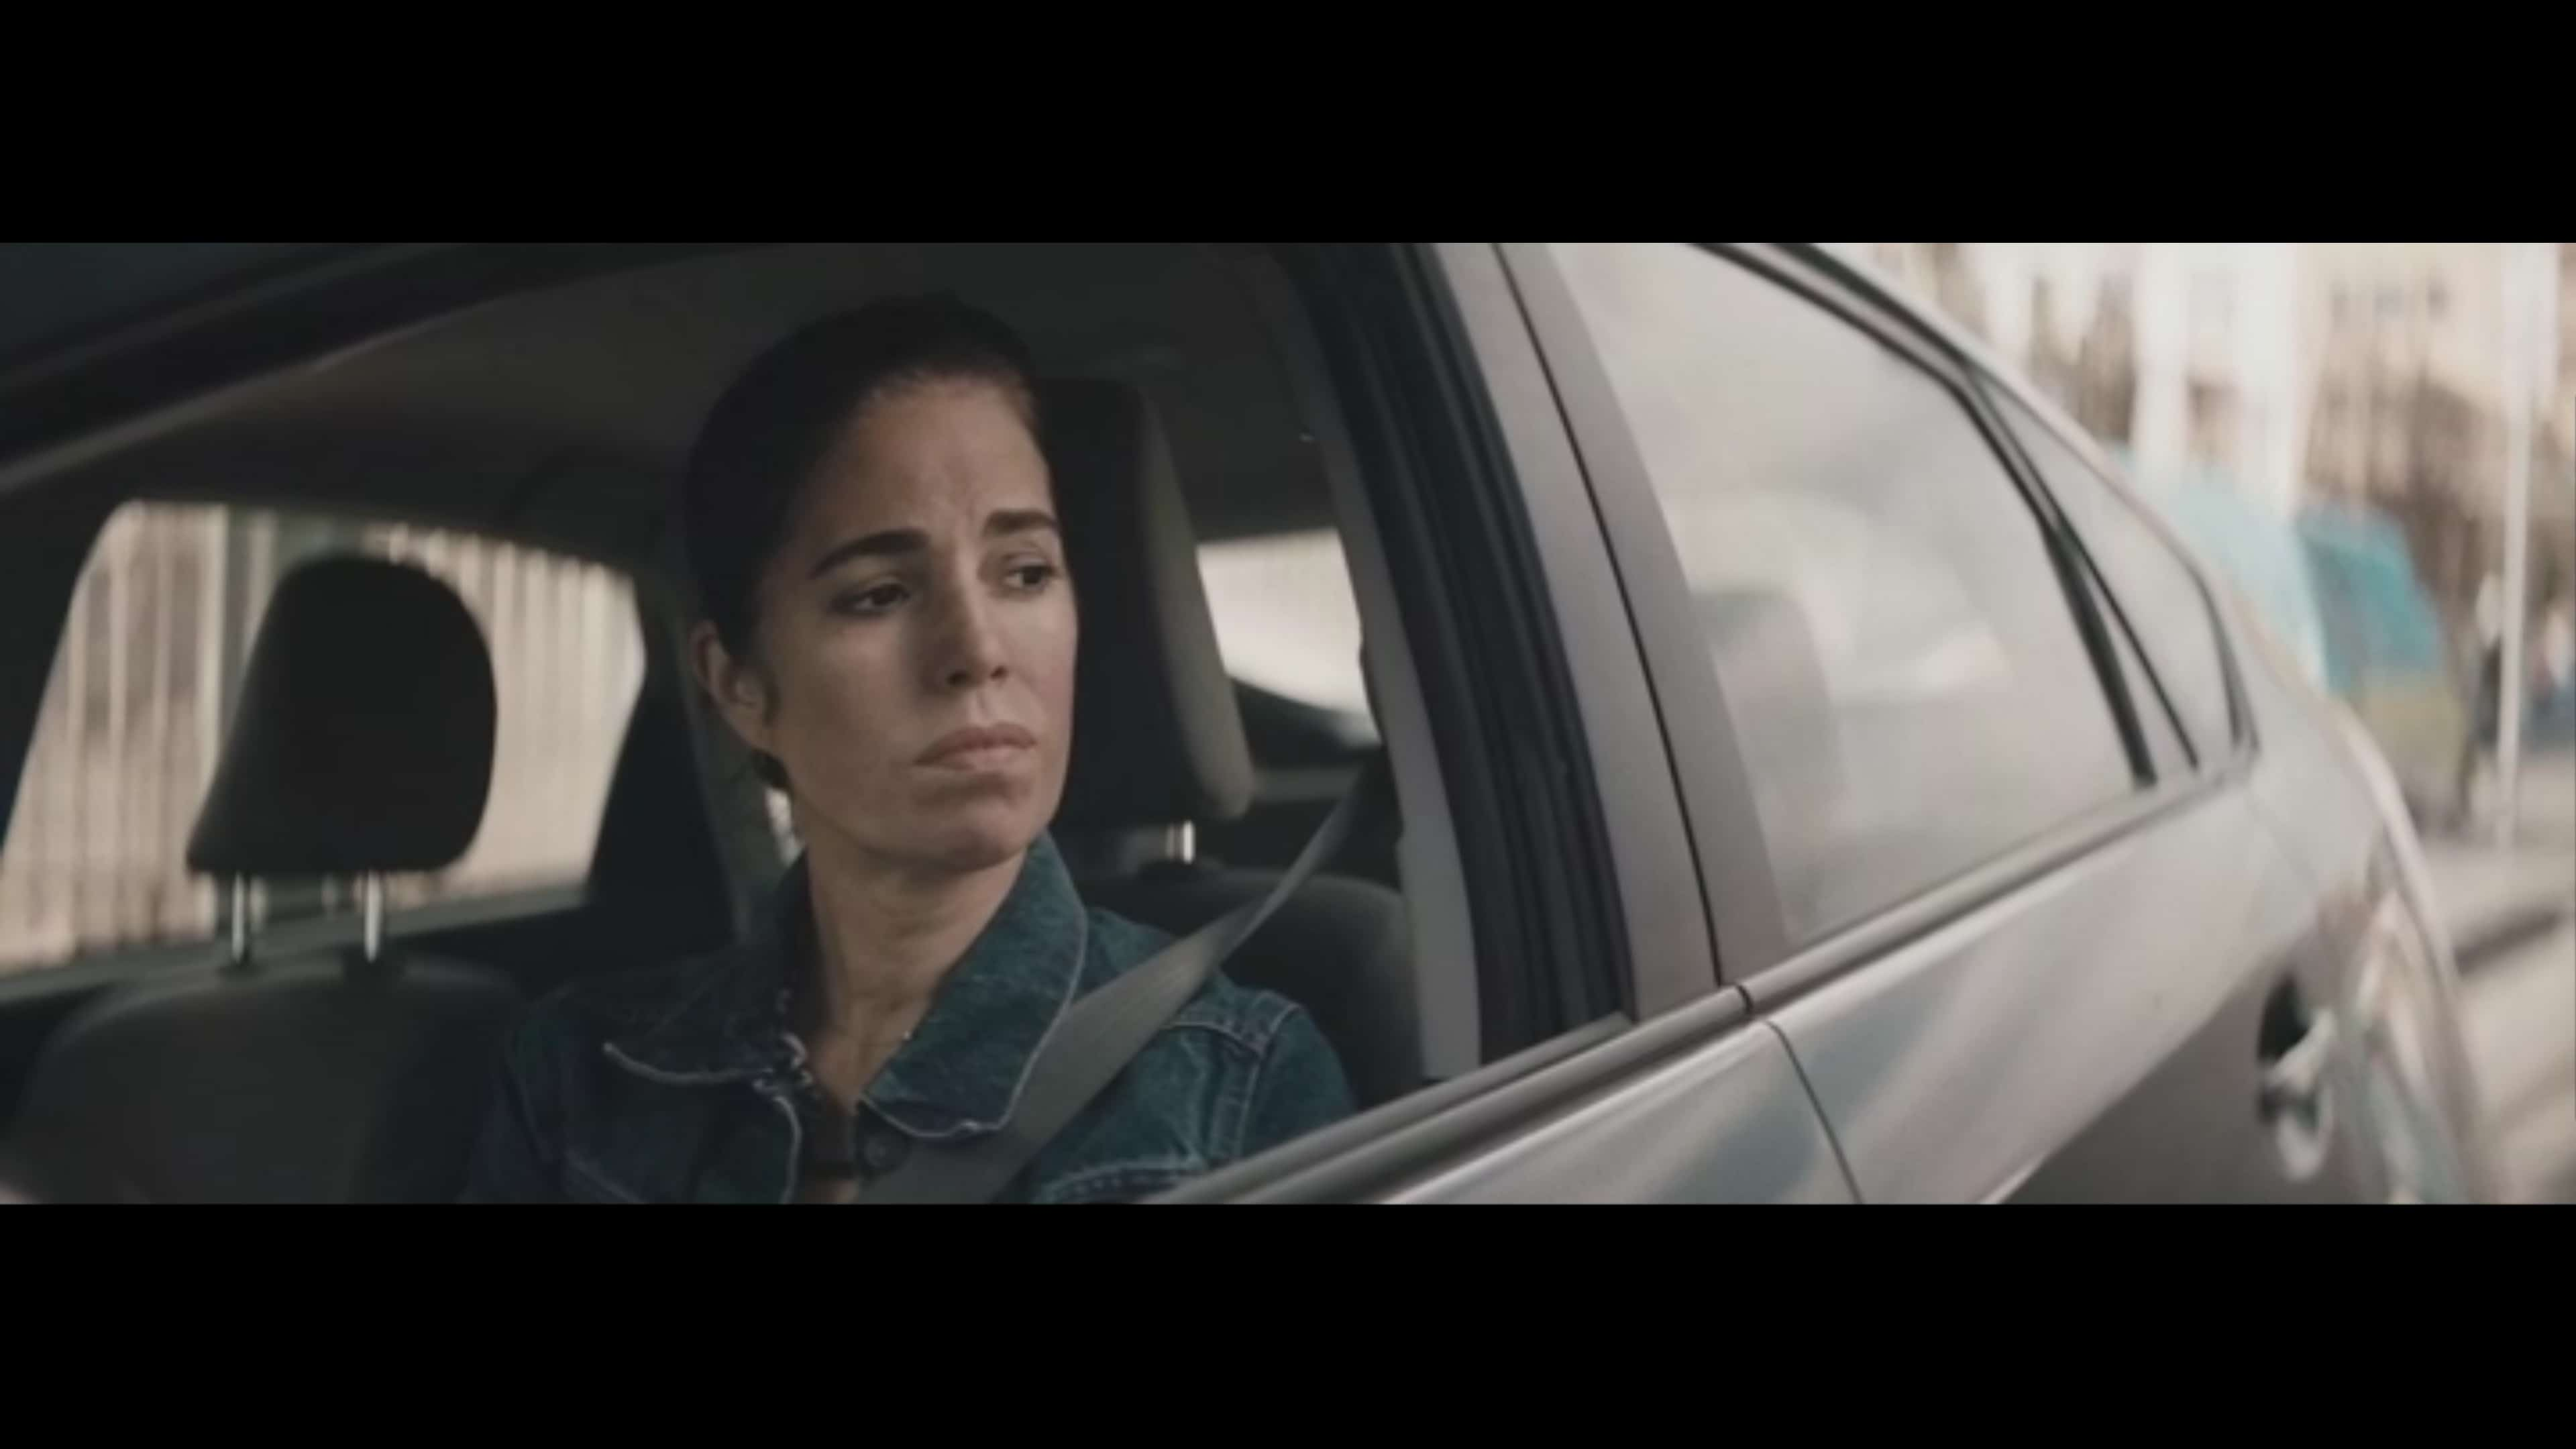 Ms. Rodriguez (Ana Ortiz) looking out the driver's side window.